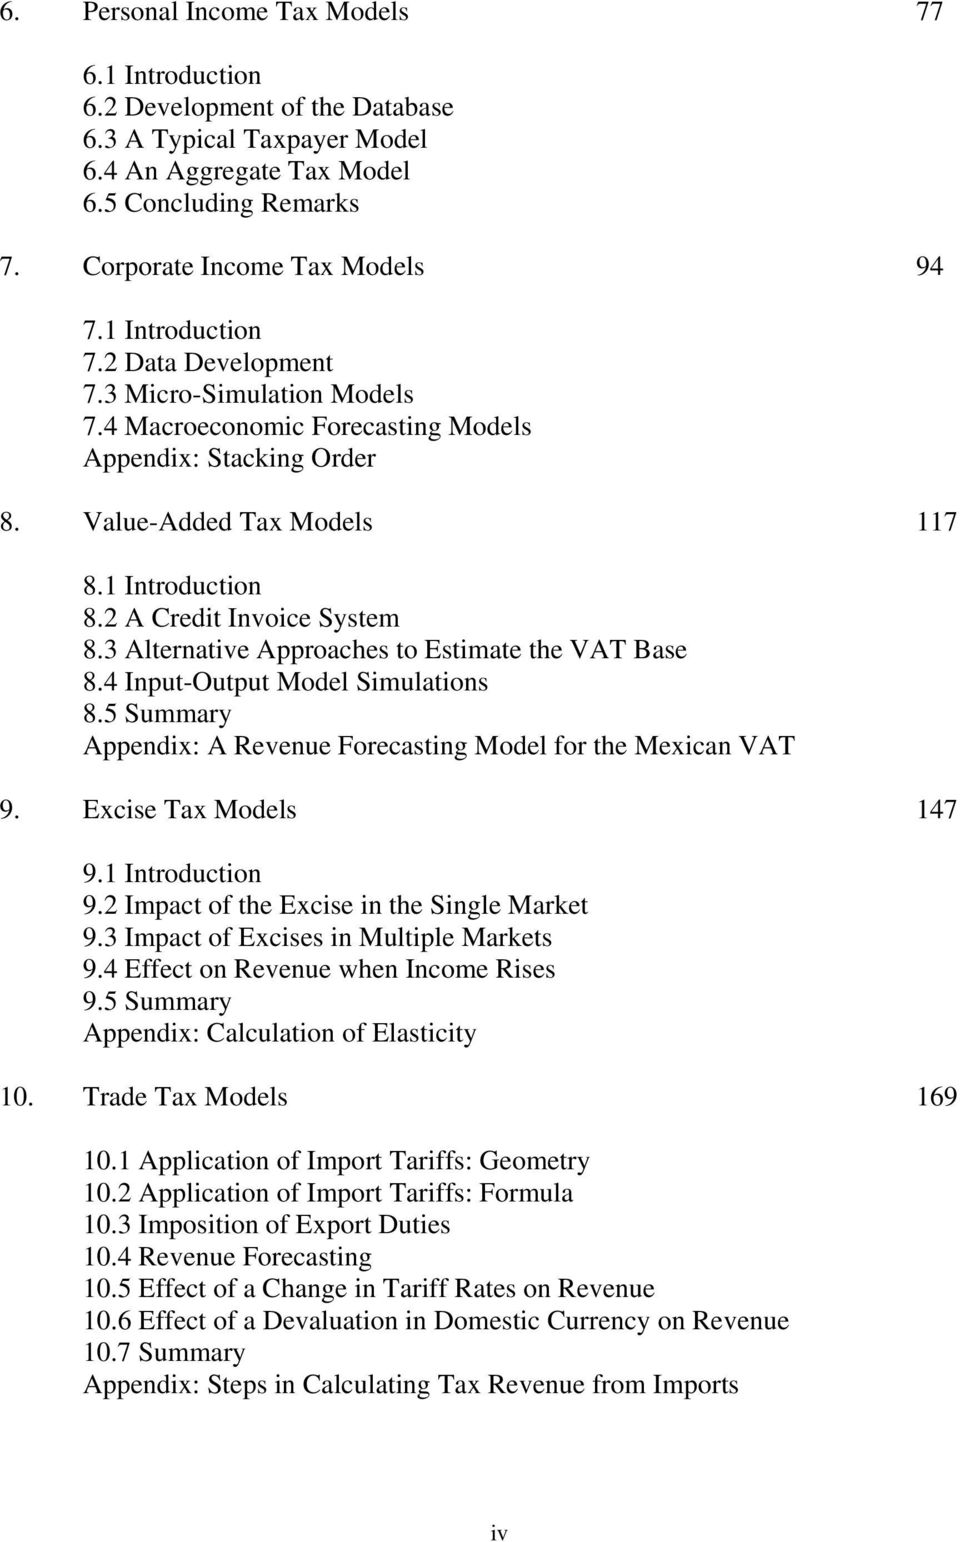 2 A Credit Invoice System 8.3 Alternative Approaches to Estimate the VAT Base 8.4 Input-Output Model Simulations 8.5 Summary Appendix: A Revenue Forecasting Model for the Mexican VAT 9.